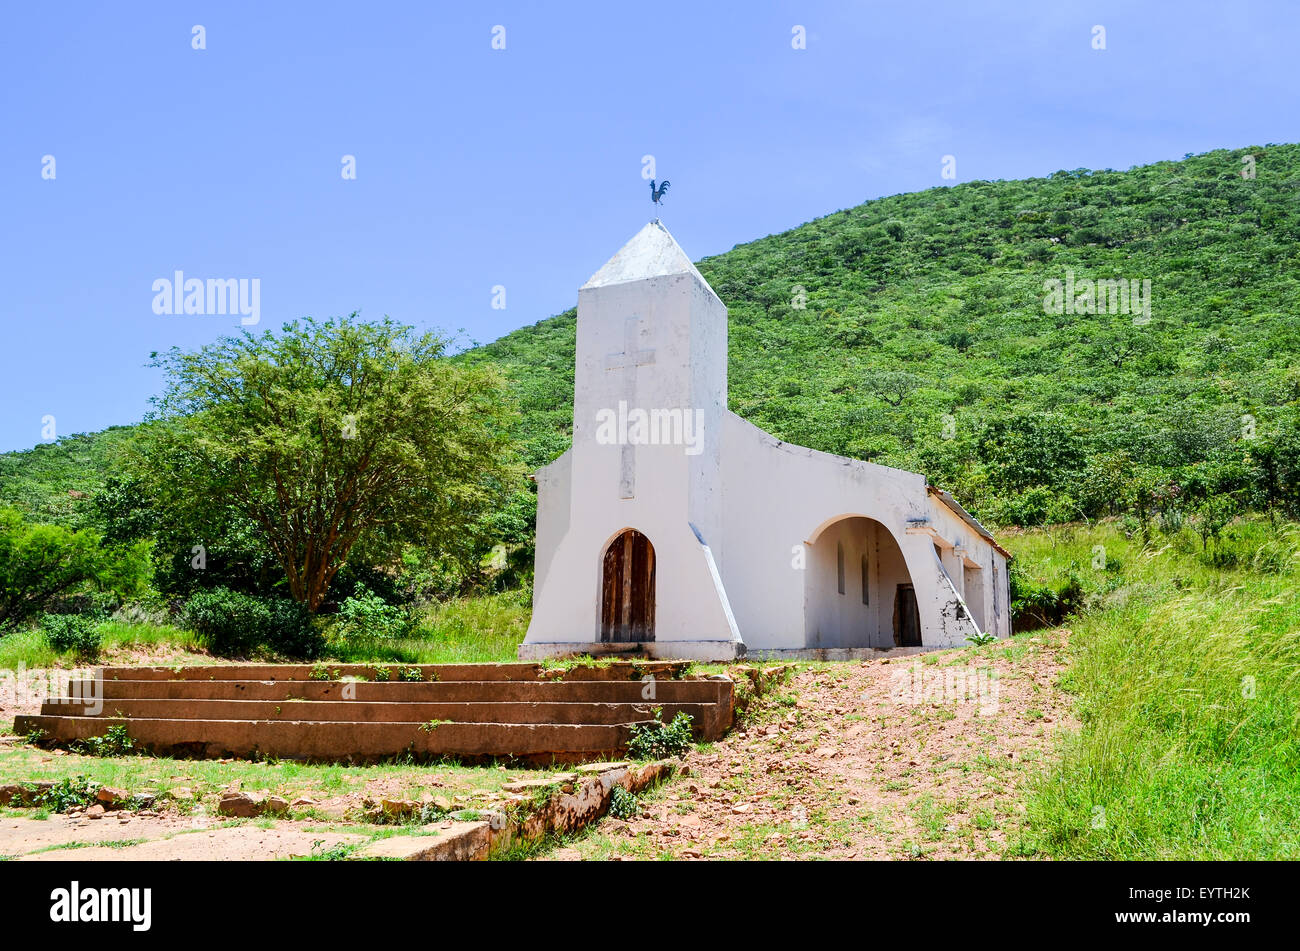 Church of Negola village in Angola - Stock Image